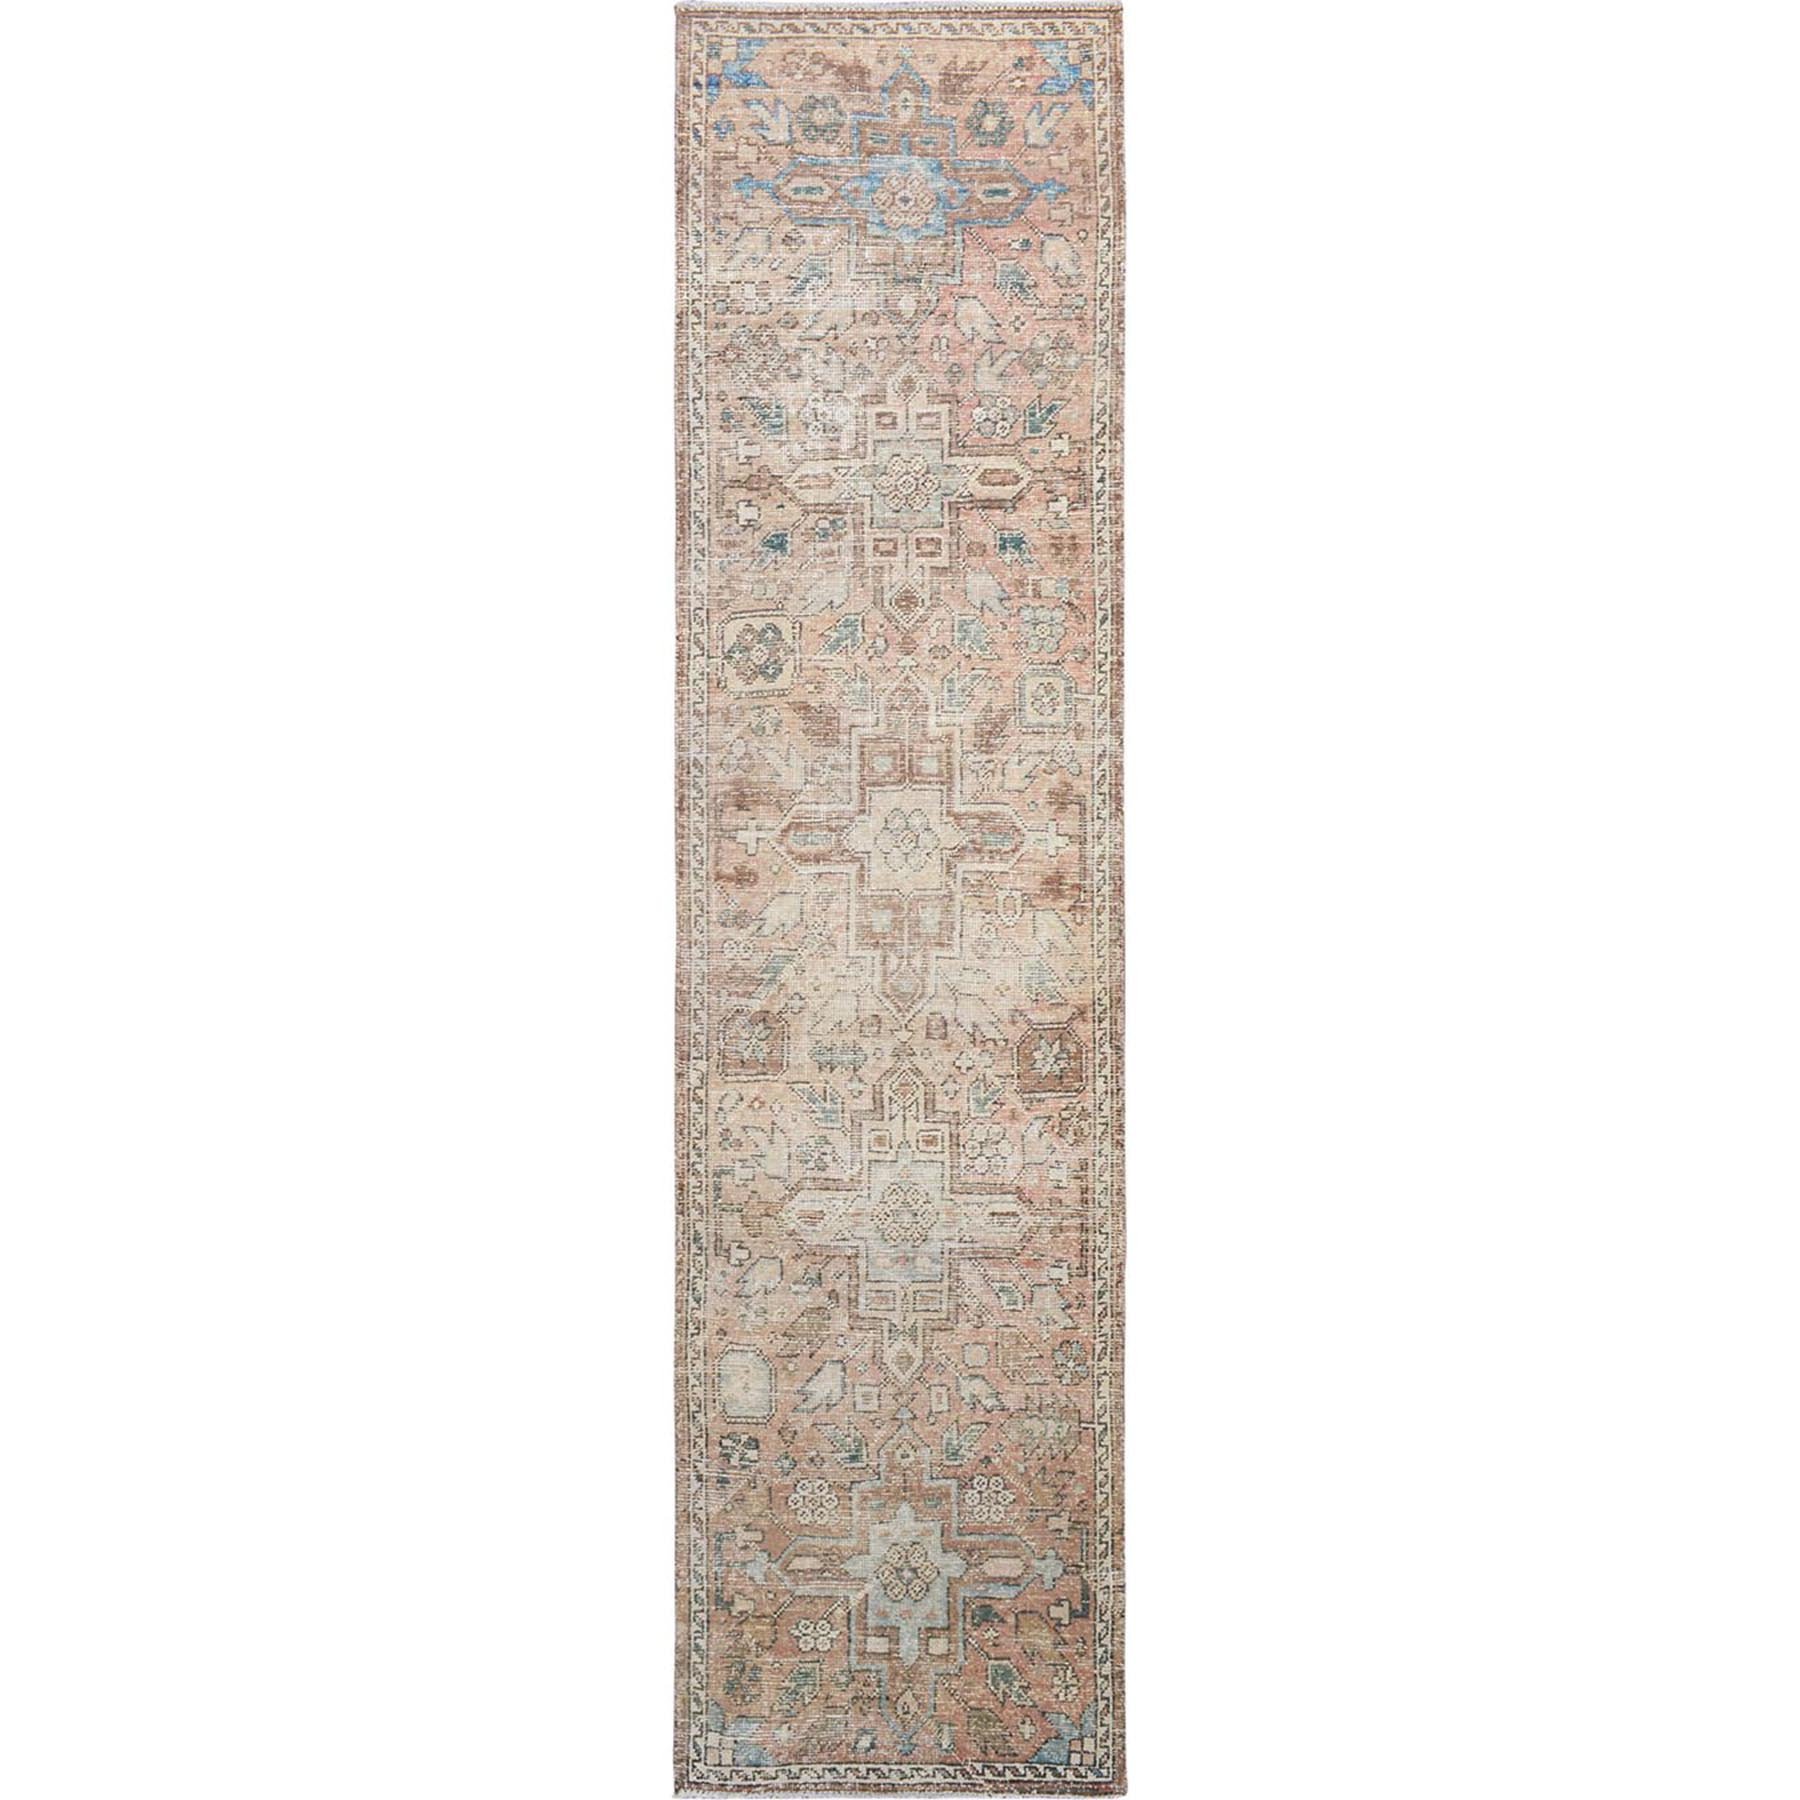 "2'8""x11'4"" Natural Colors Vintage and Worn Down Persian Heriz Hand Woven Runner Oriental Rug"